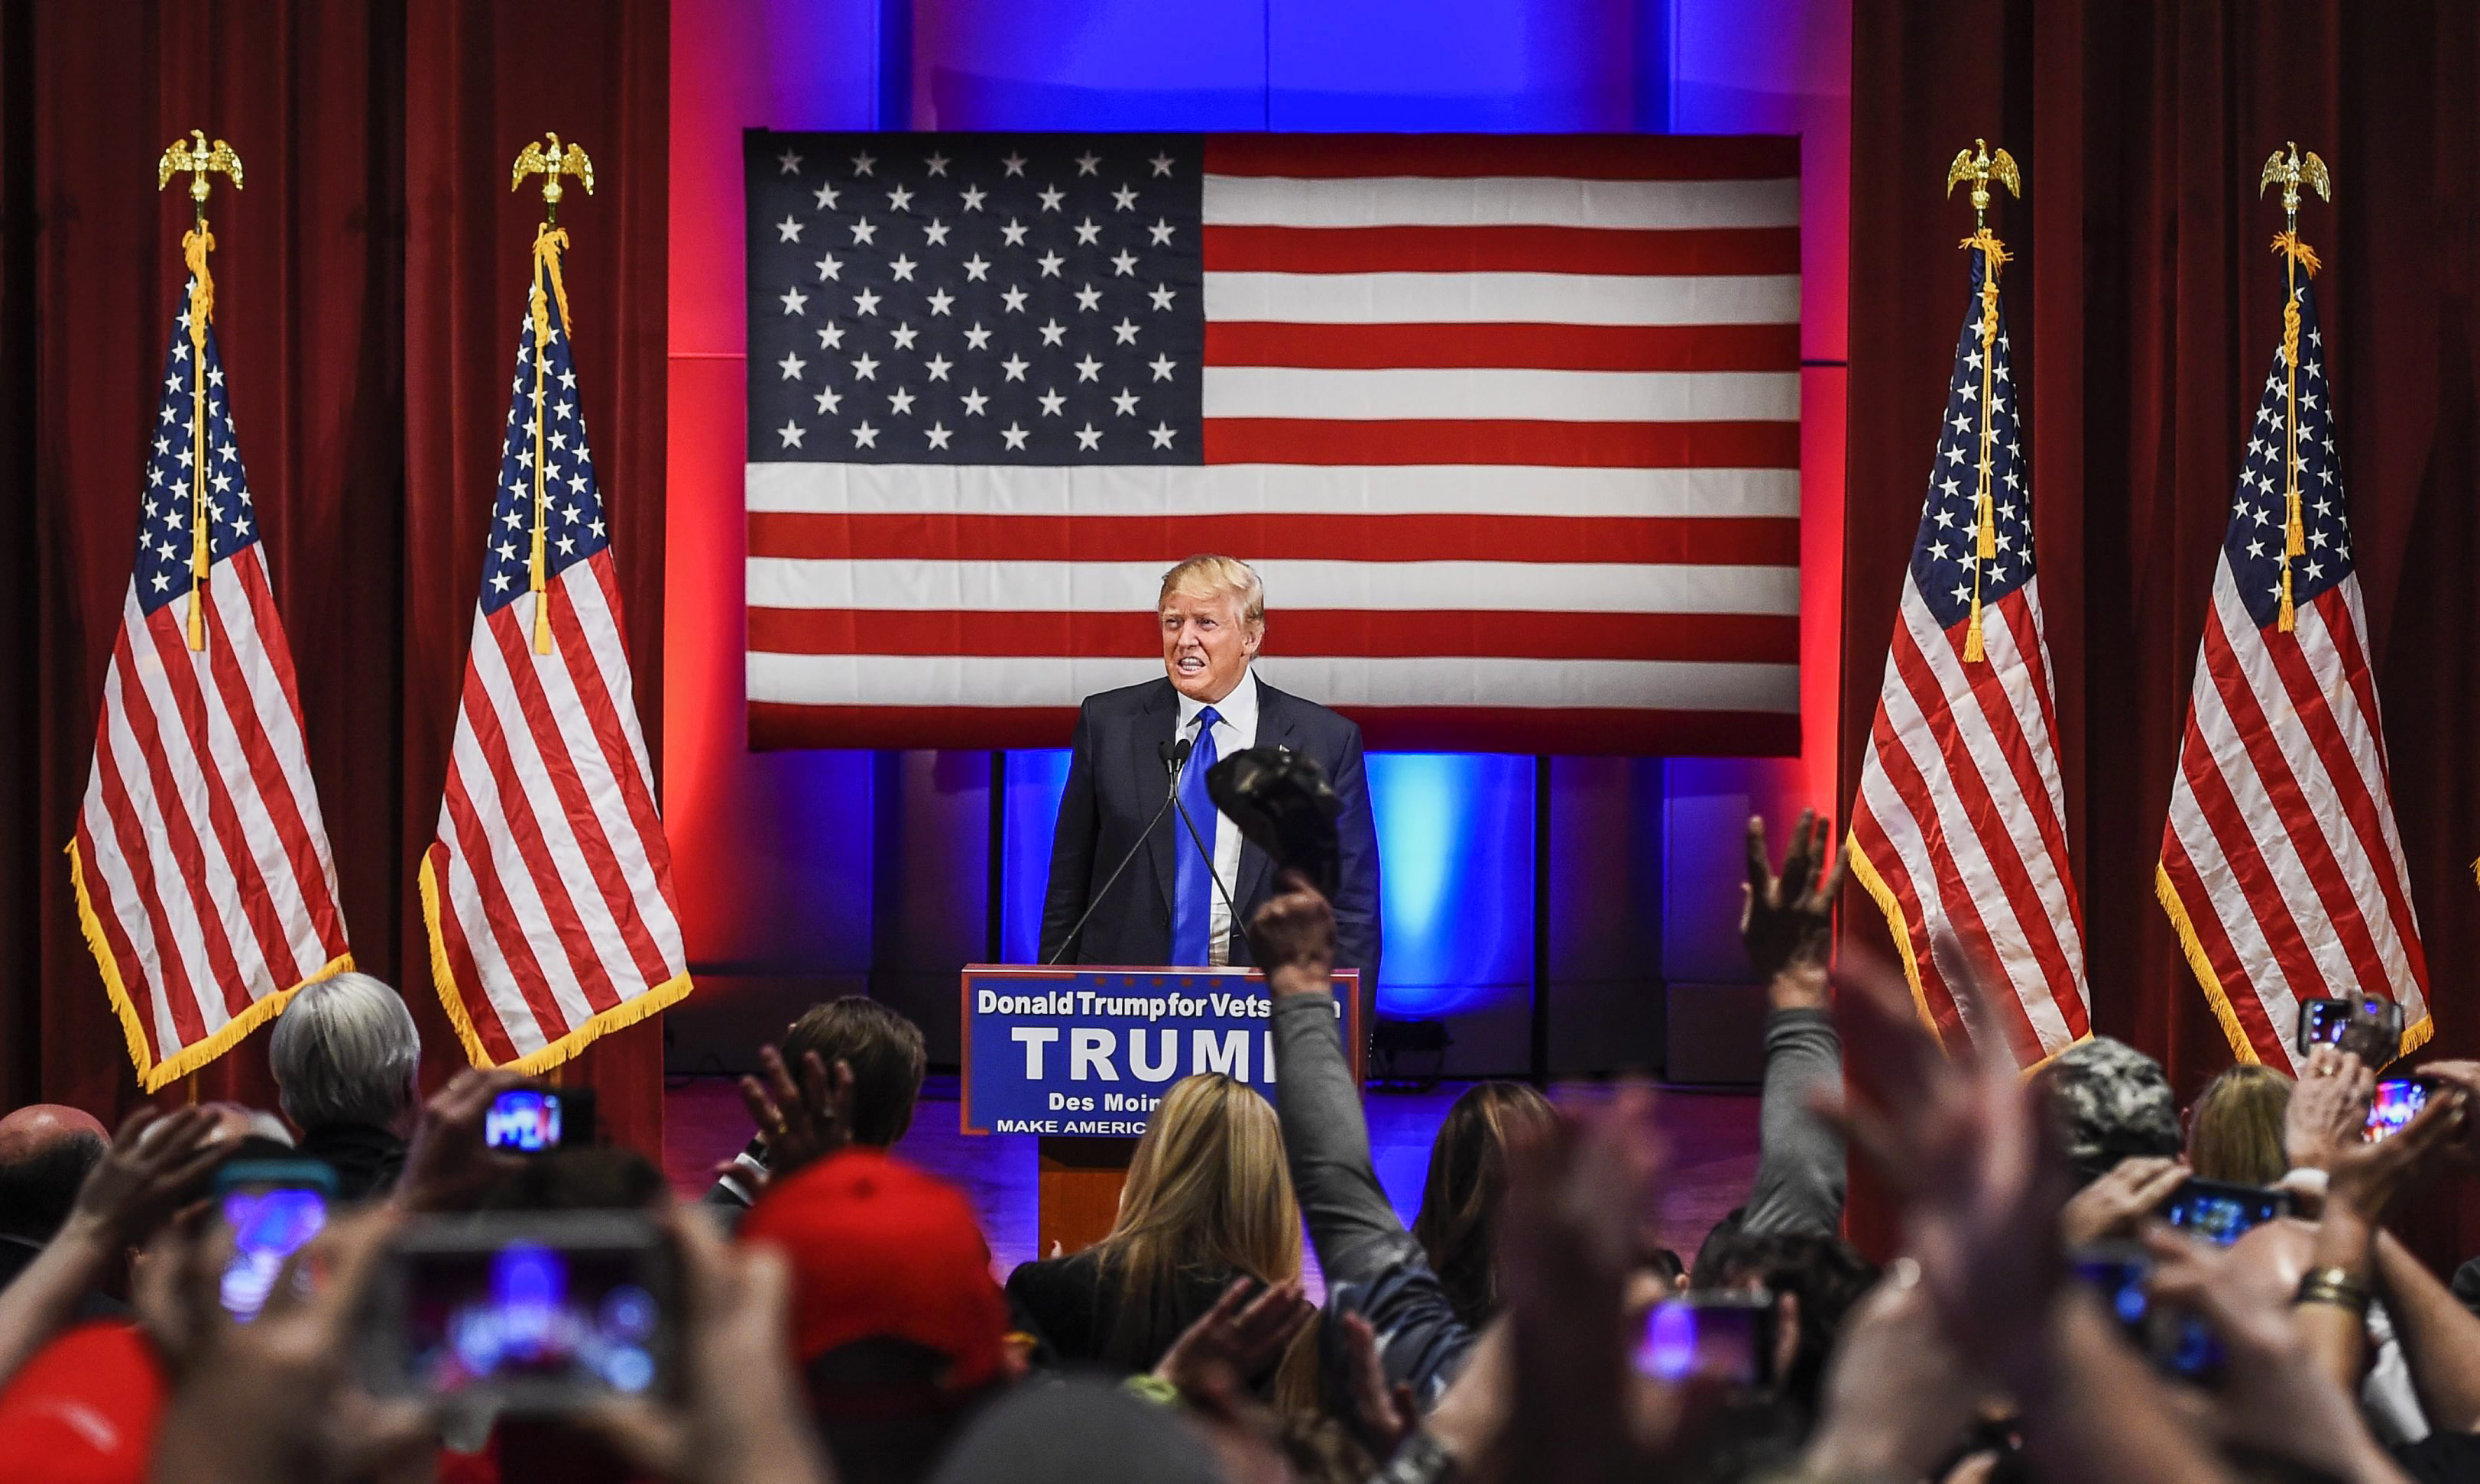 Republican presidential candidate Donald Trump is applauded at a special event to benefit veterans organizations at Drake University in Des Moines, Iowa on Jan 28, 2016.